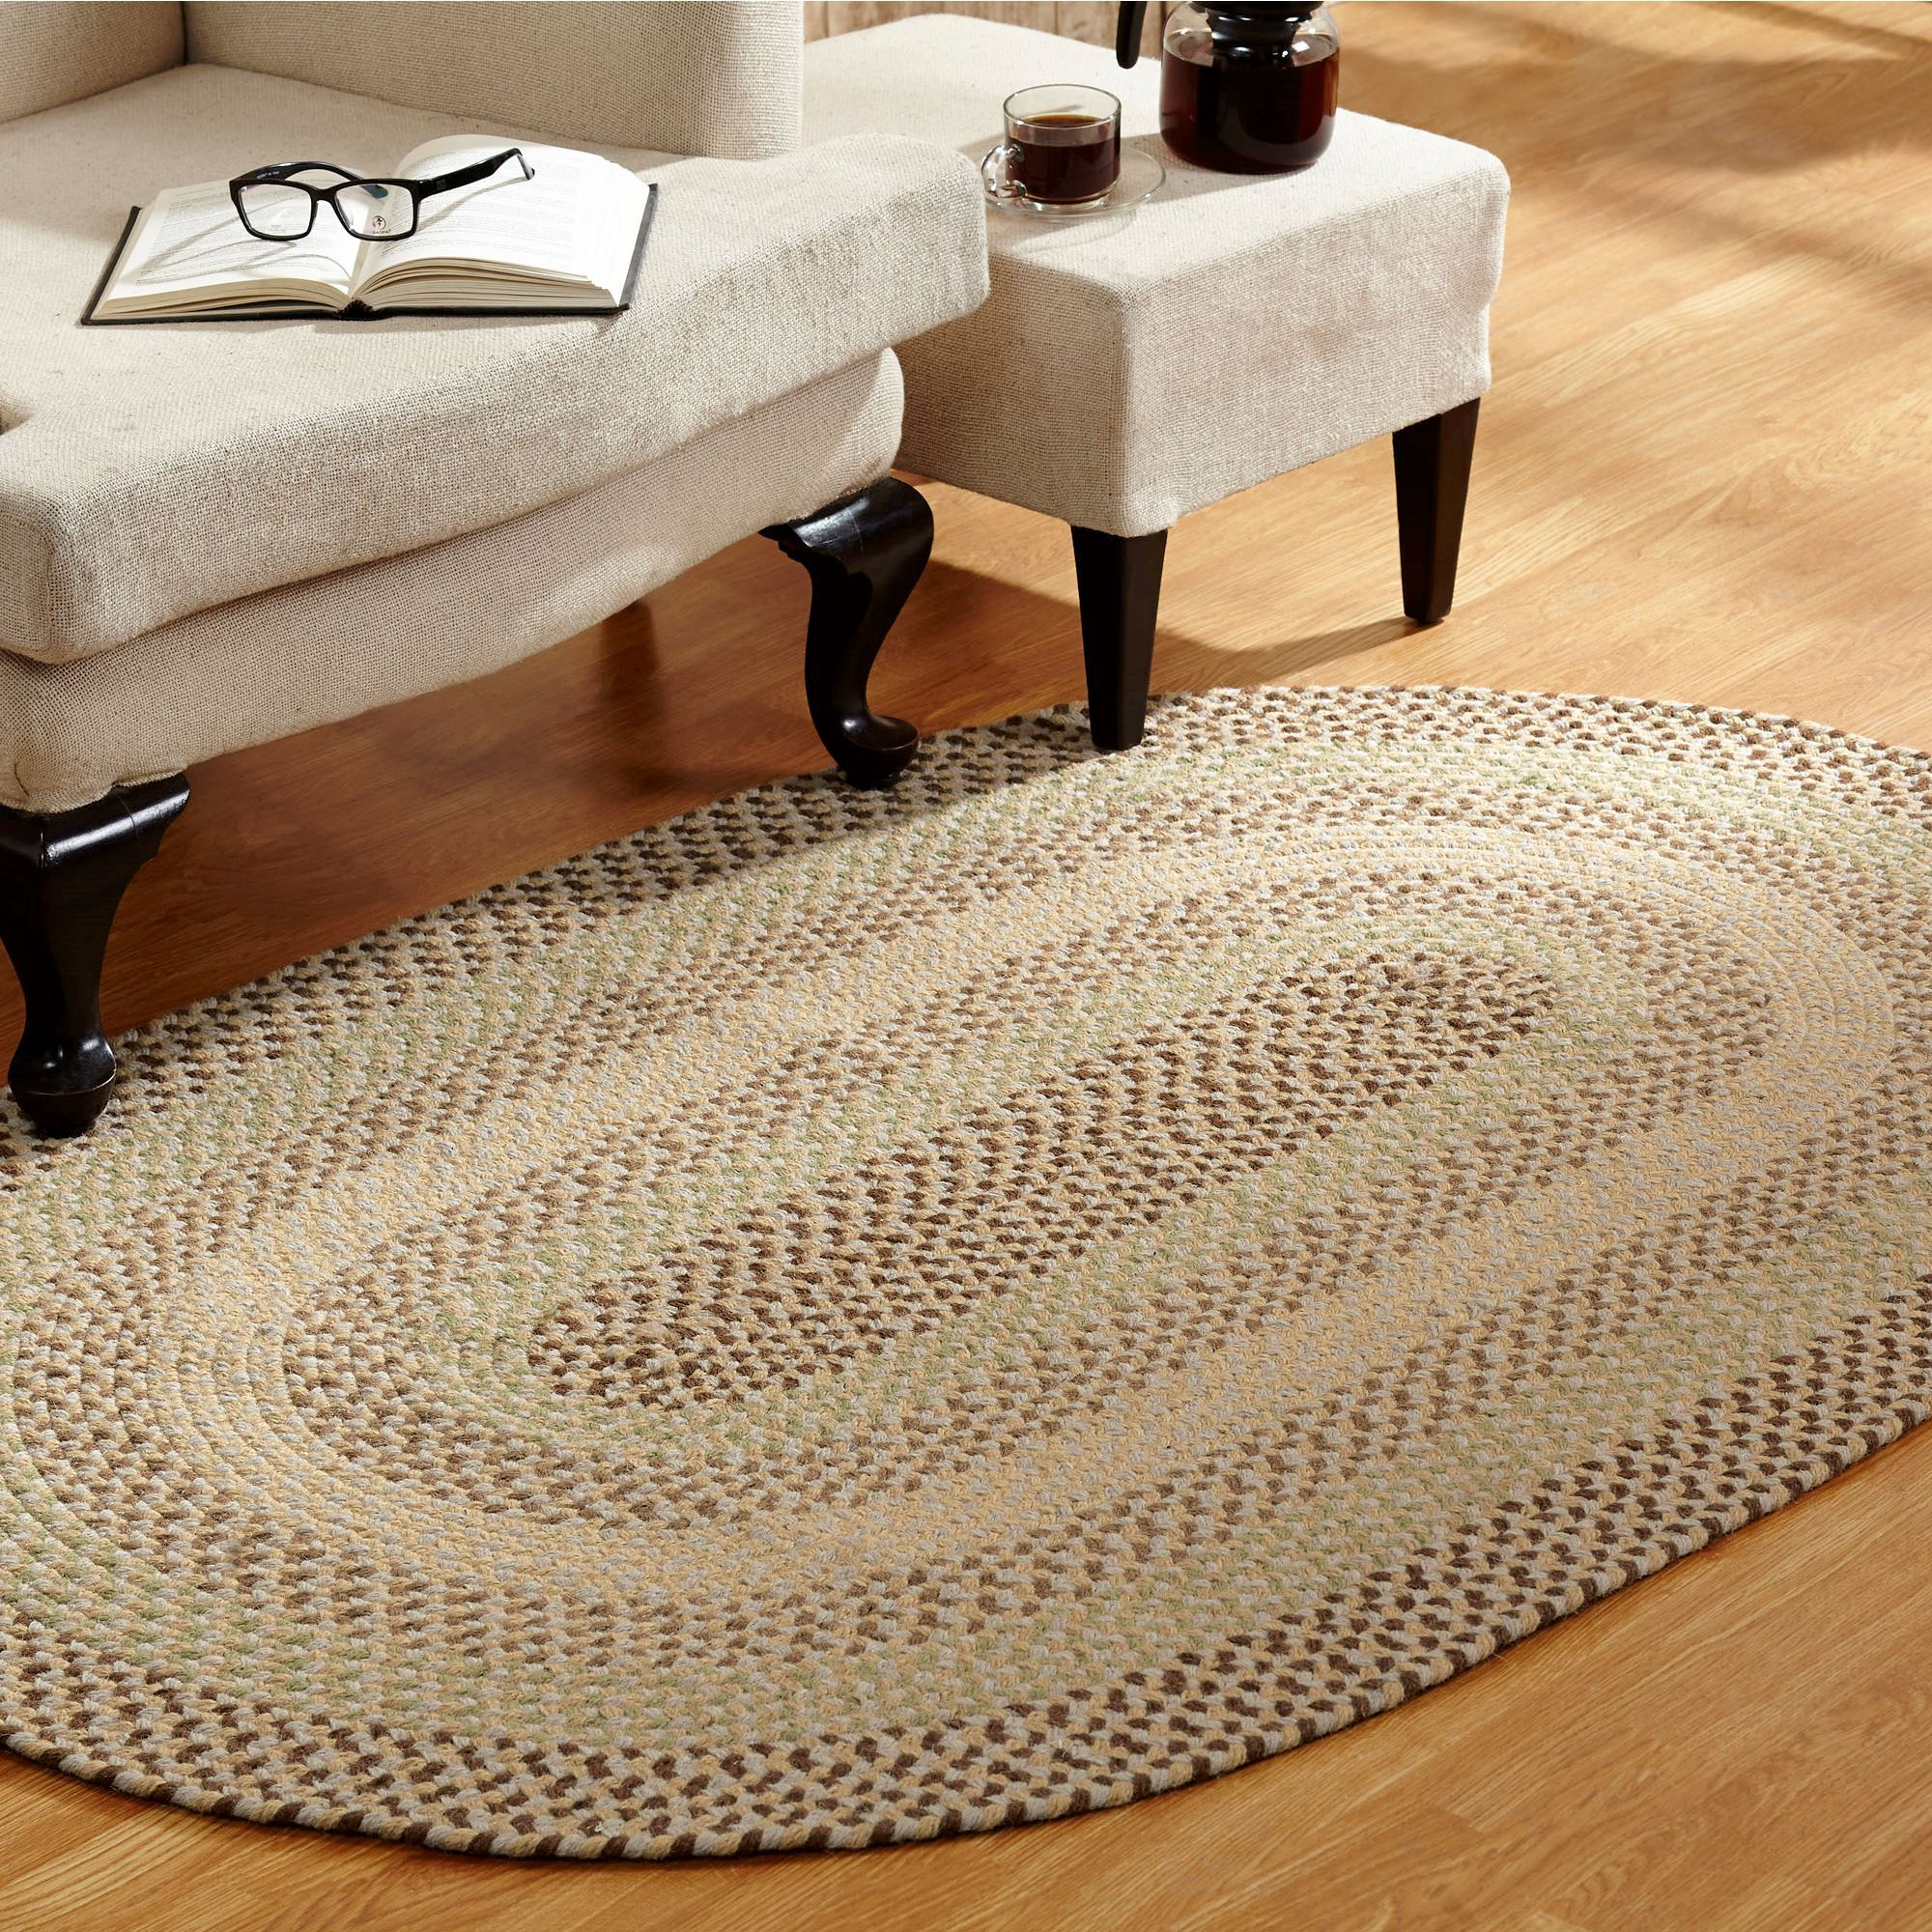 Why you should have braided area rugs in your house